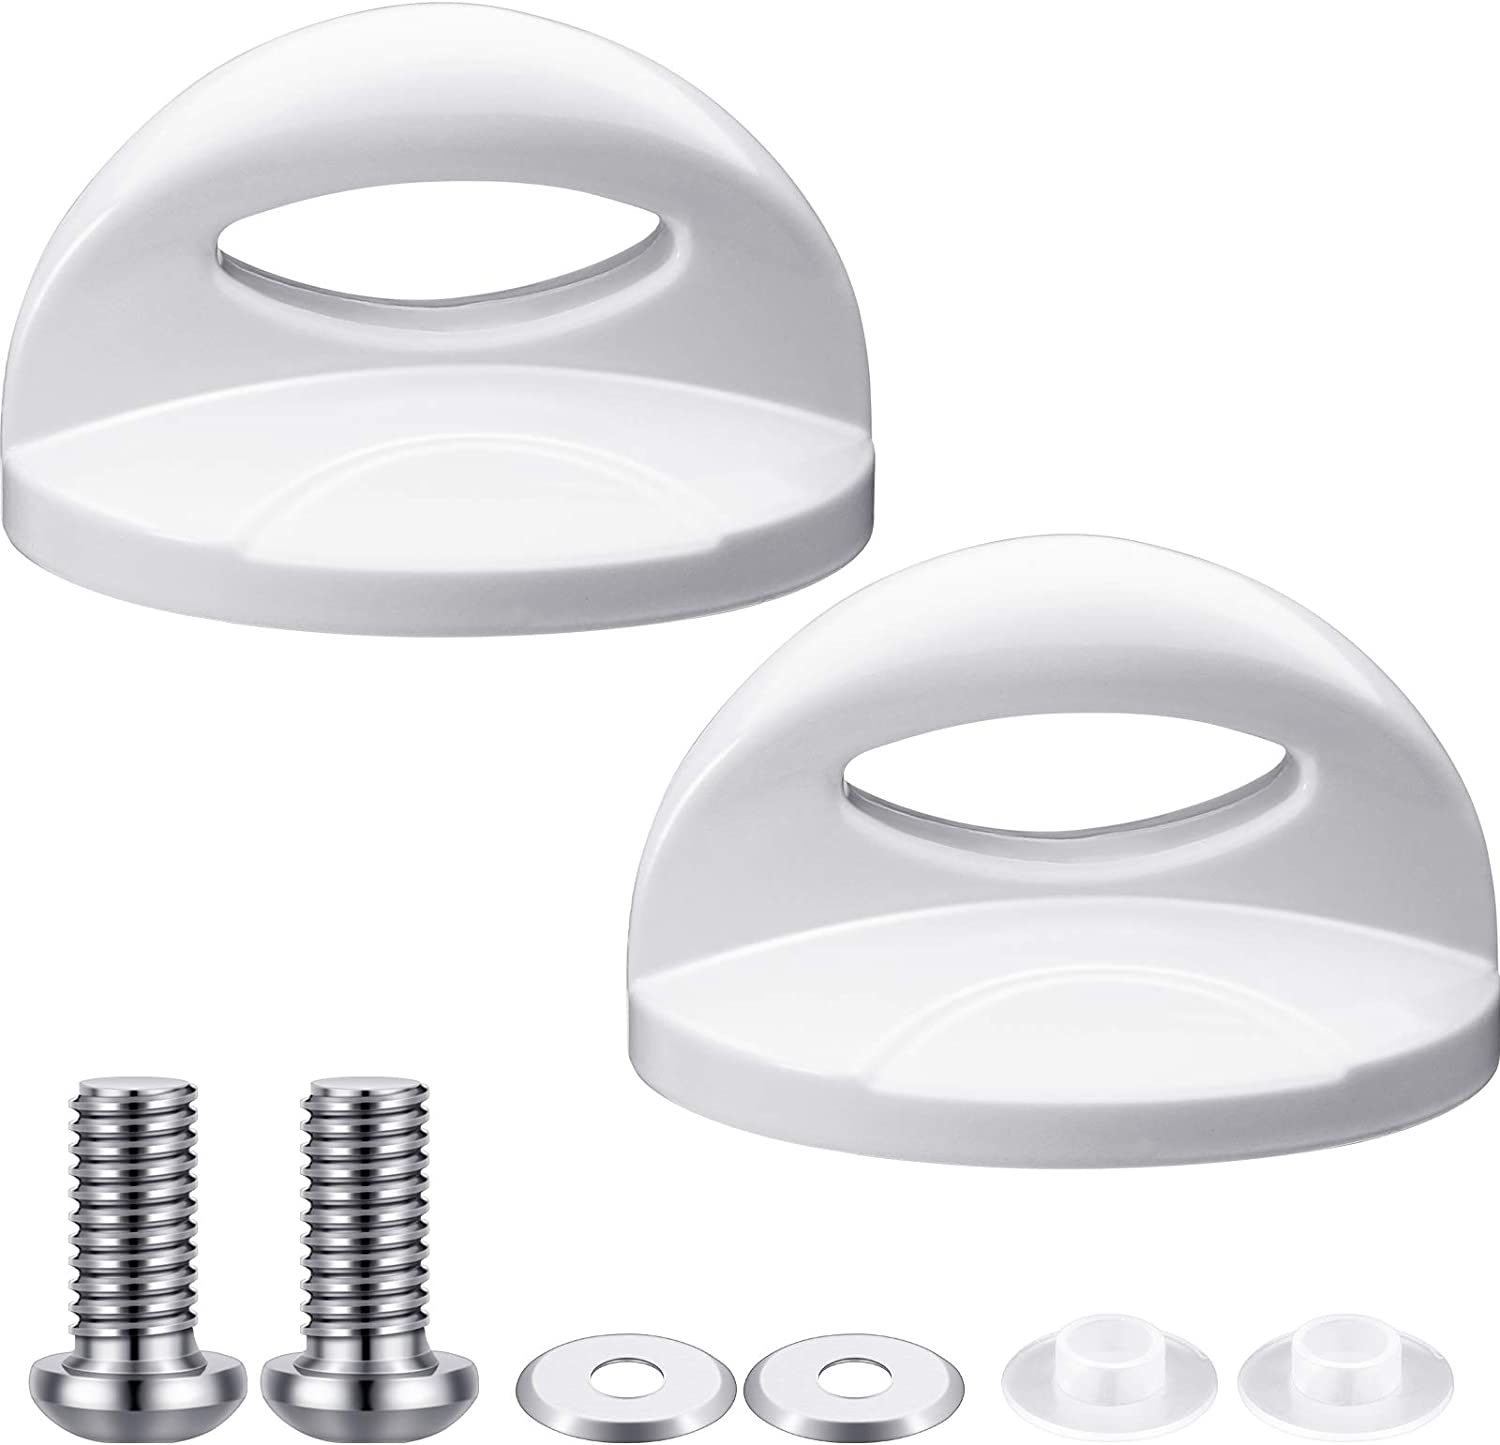 2 Pieces White Pot Lid Top Replacement Knob Kitchen Cookware Universal Replacement Pan Lid Holding Handles Cookware Lid Knob Replacement for Pots and Pans Crock-Pot Replacement Lid